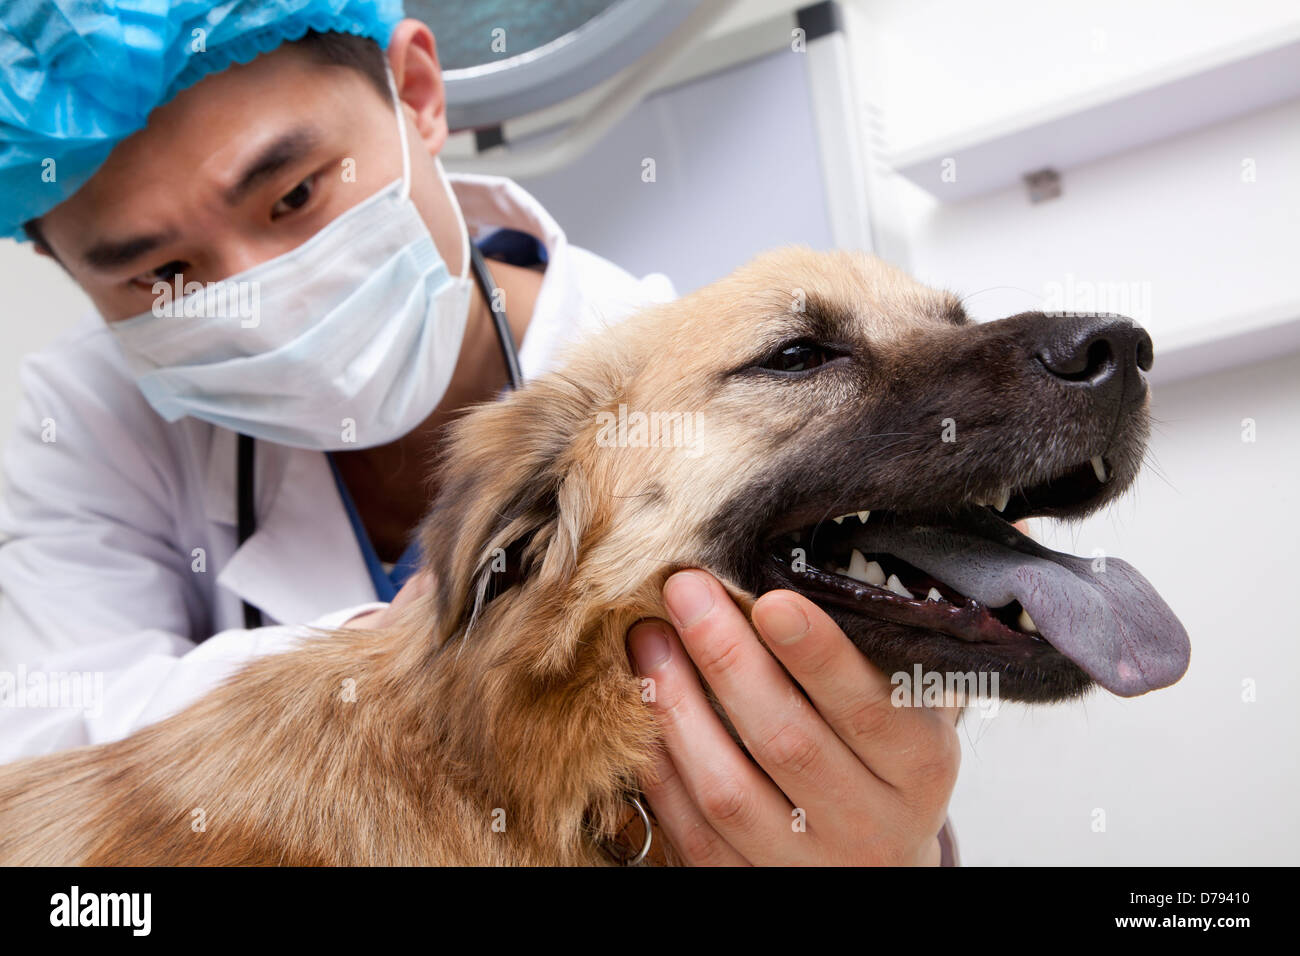 Veterinarian with dog in examination room - Stock Image